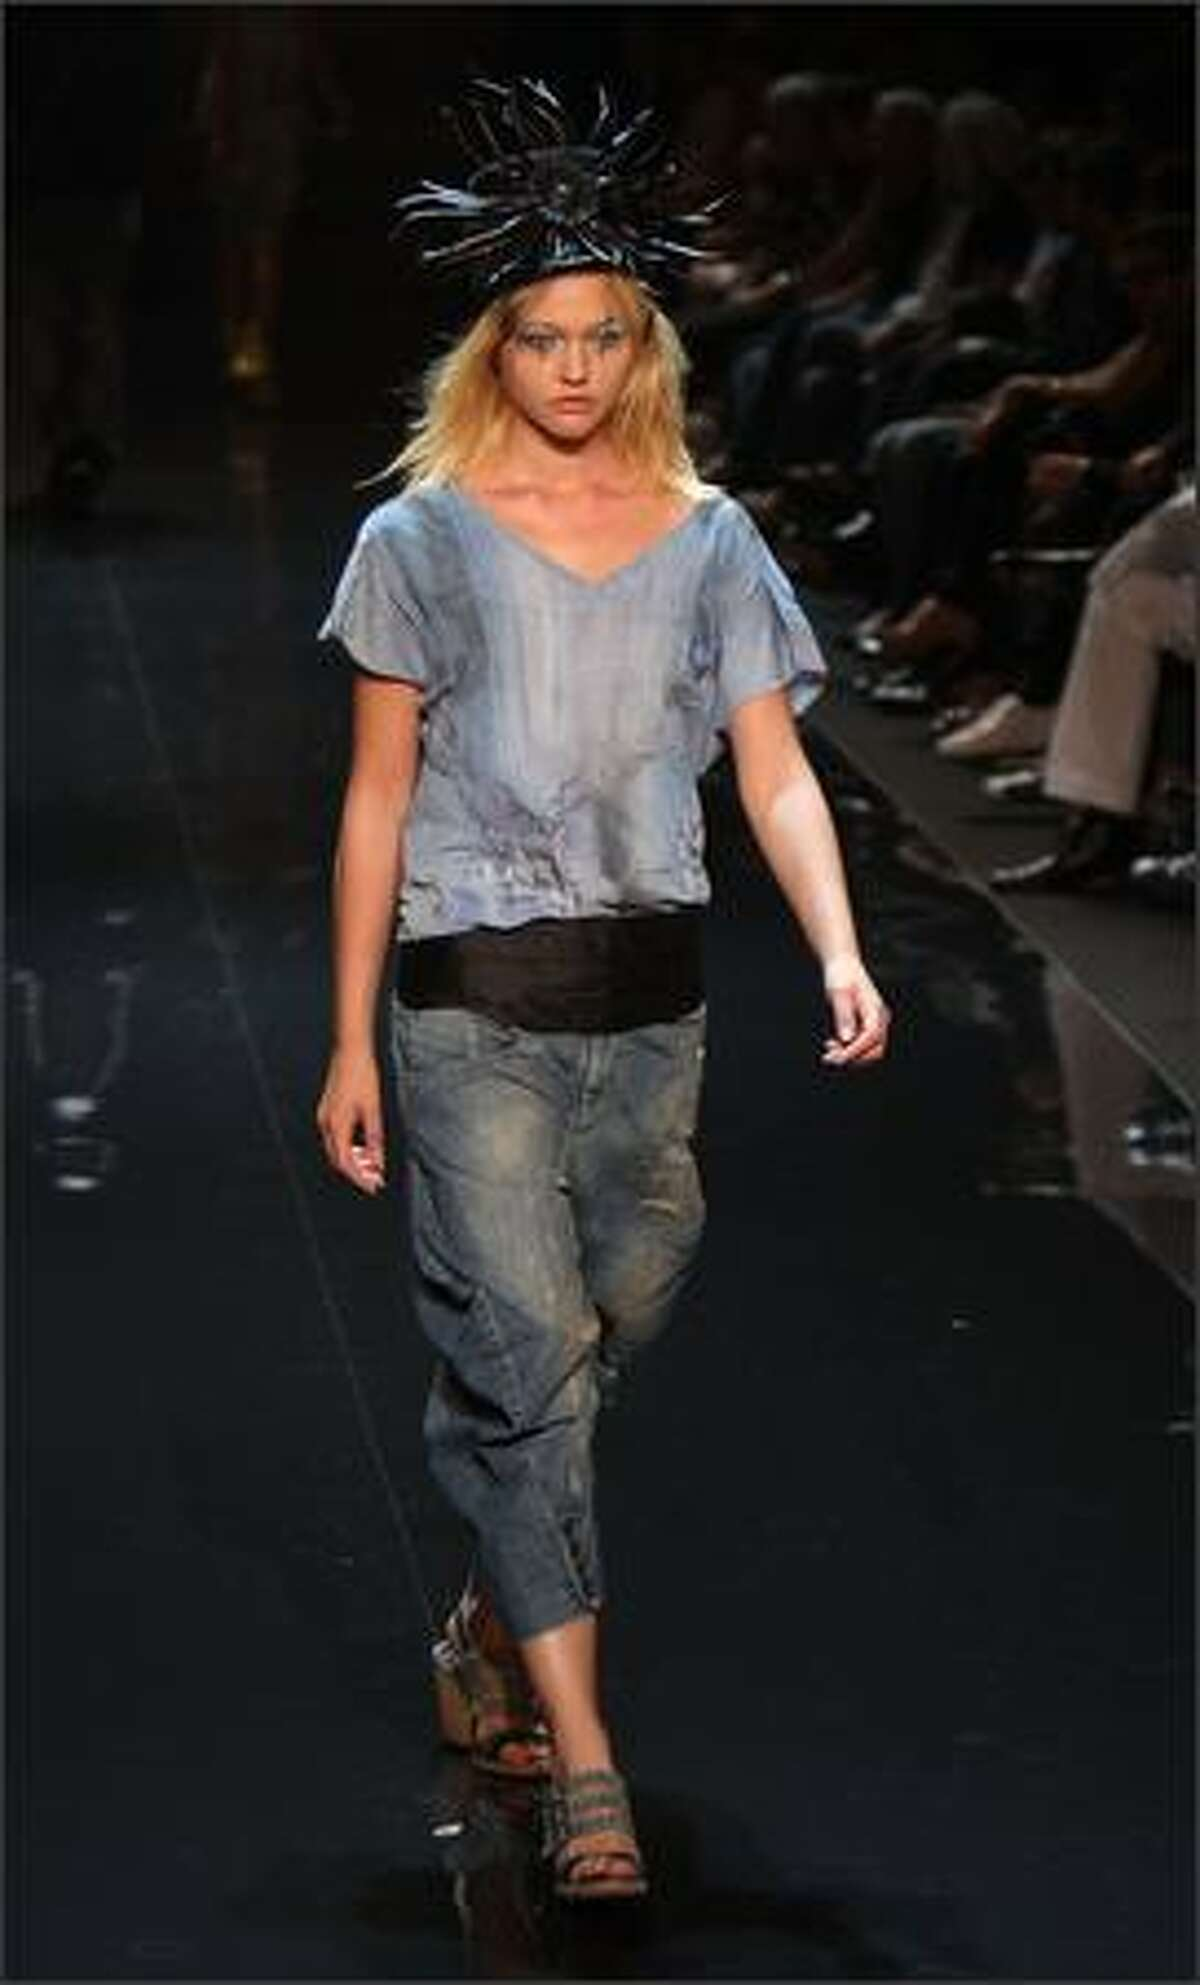 A model walks the runway at the Diesel Spring 2009 fashion show during Mercedes-Benz Fashion Week in New York City.